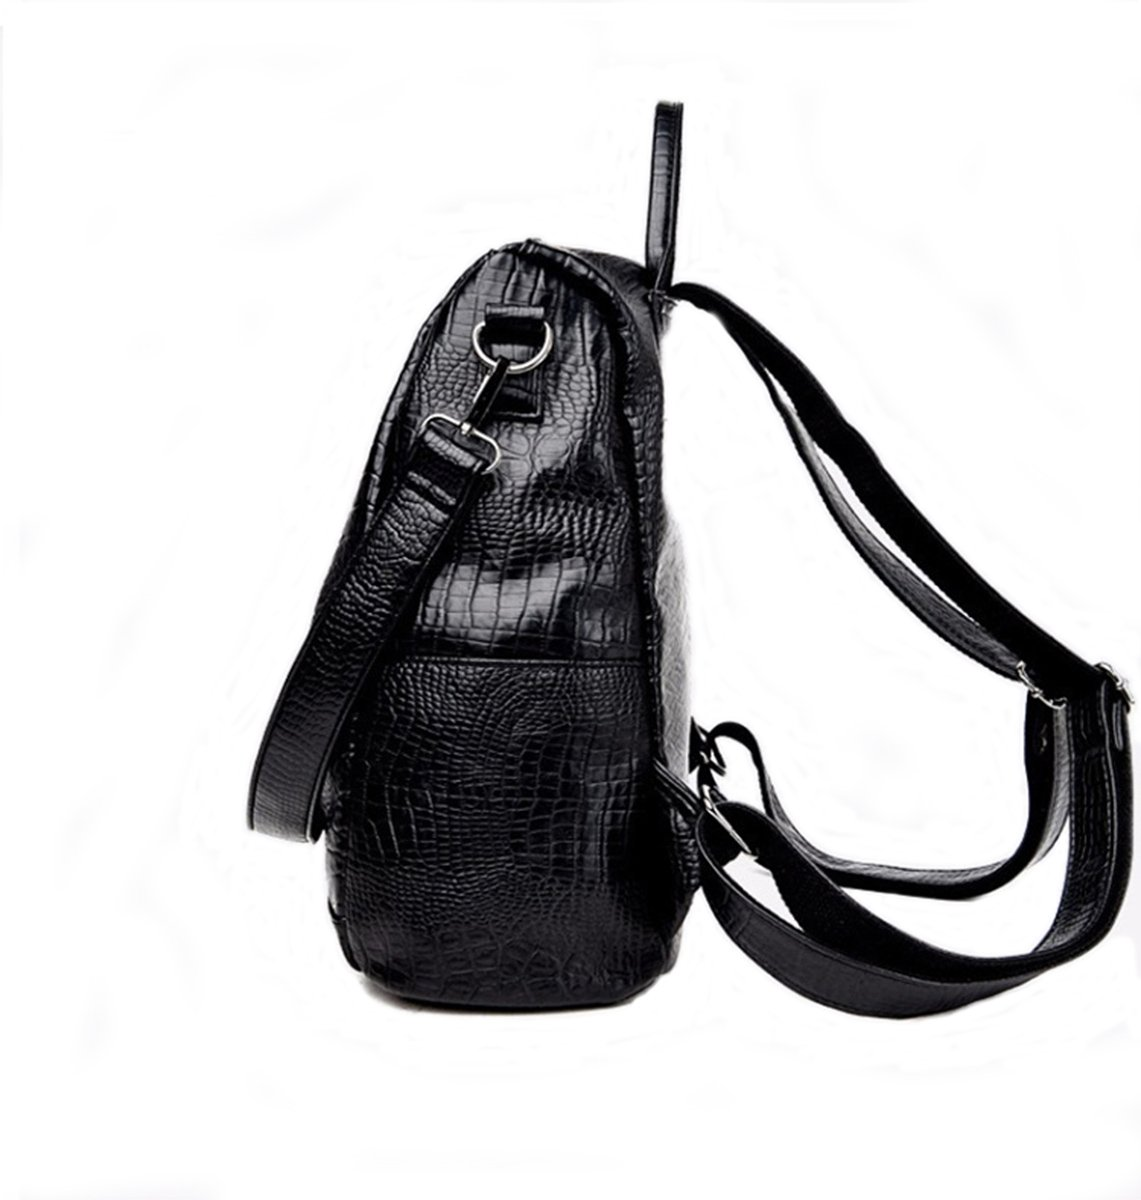 Fashion Backpack for Women Rucksack PU Leather Black Shoulder Bags Purses for Ladies Tote Bags by Goldsuntop (Image #1)